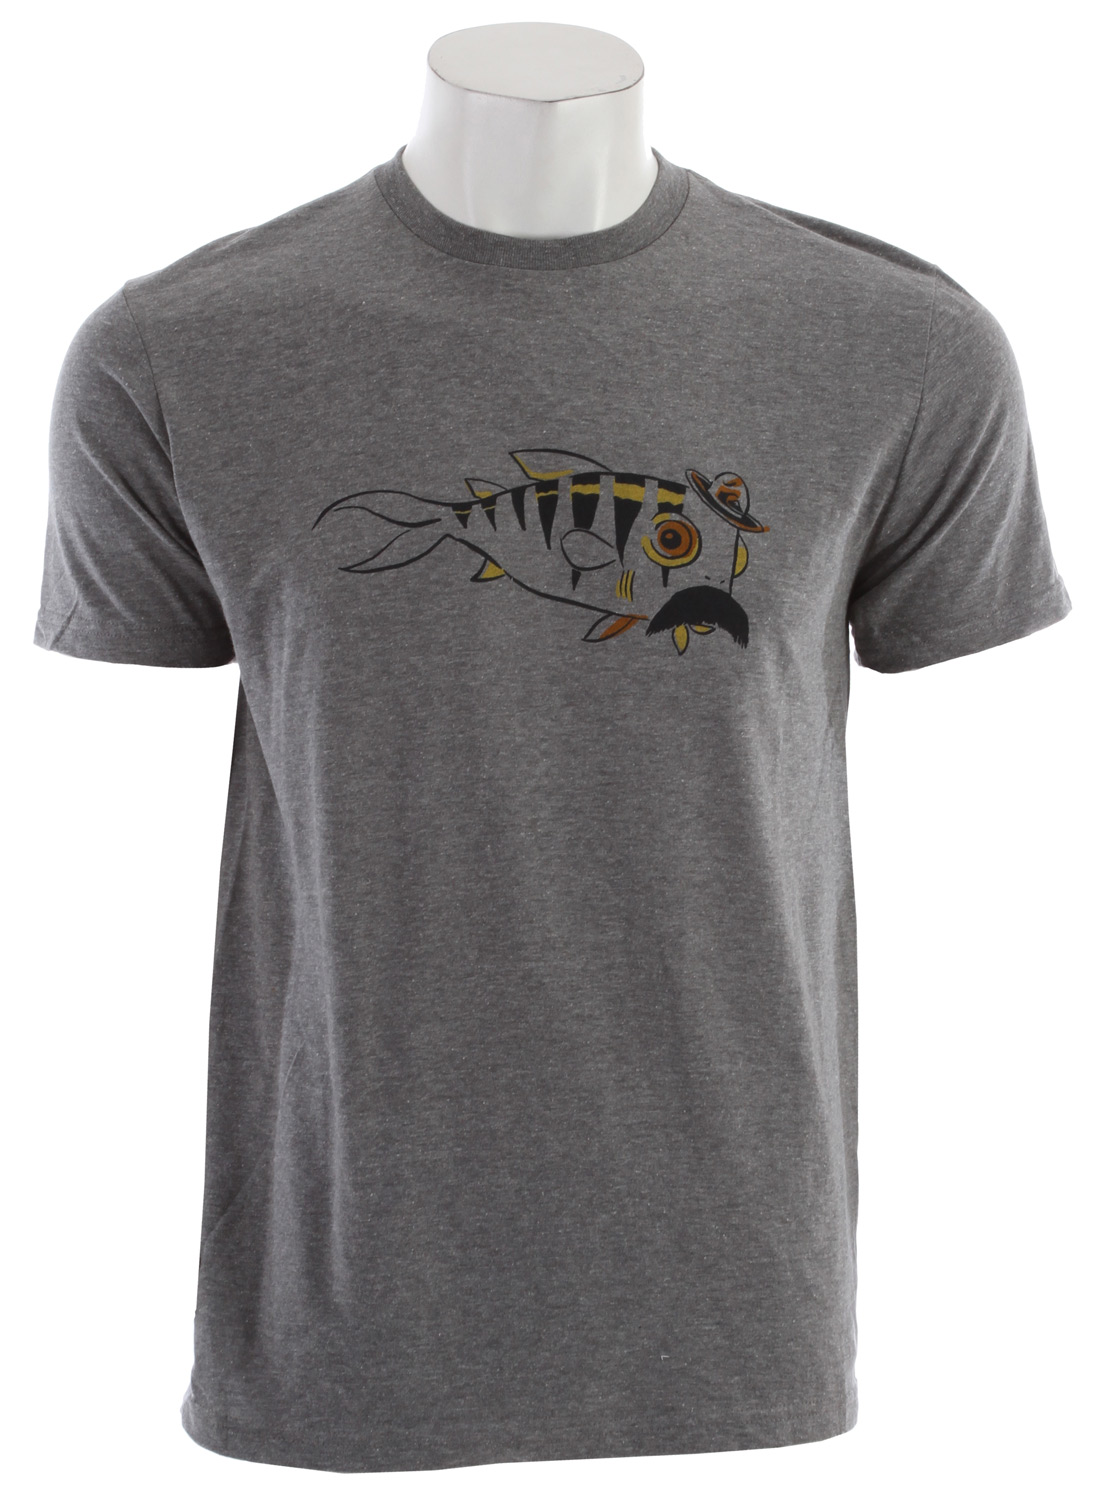 Fitness Fish can't ride a bike. But they can grow a moustache, wear a hat and look pretty chill on a Whiskers classic tee.Key Features of the Quiksilver Whiskers T-Shirt: 22 singles ringspun jersey, regular fit SOLIDS: 100% cotton. HEATHERS: 50% cotton / 50% polyester Machine wash, imported. - $13.95